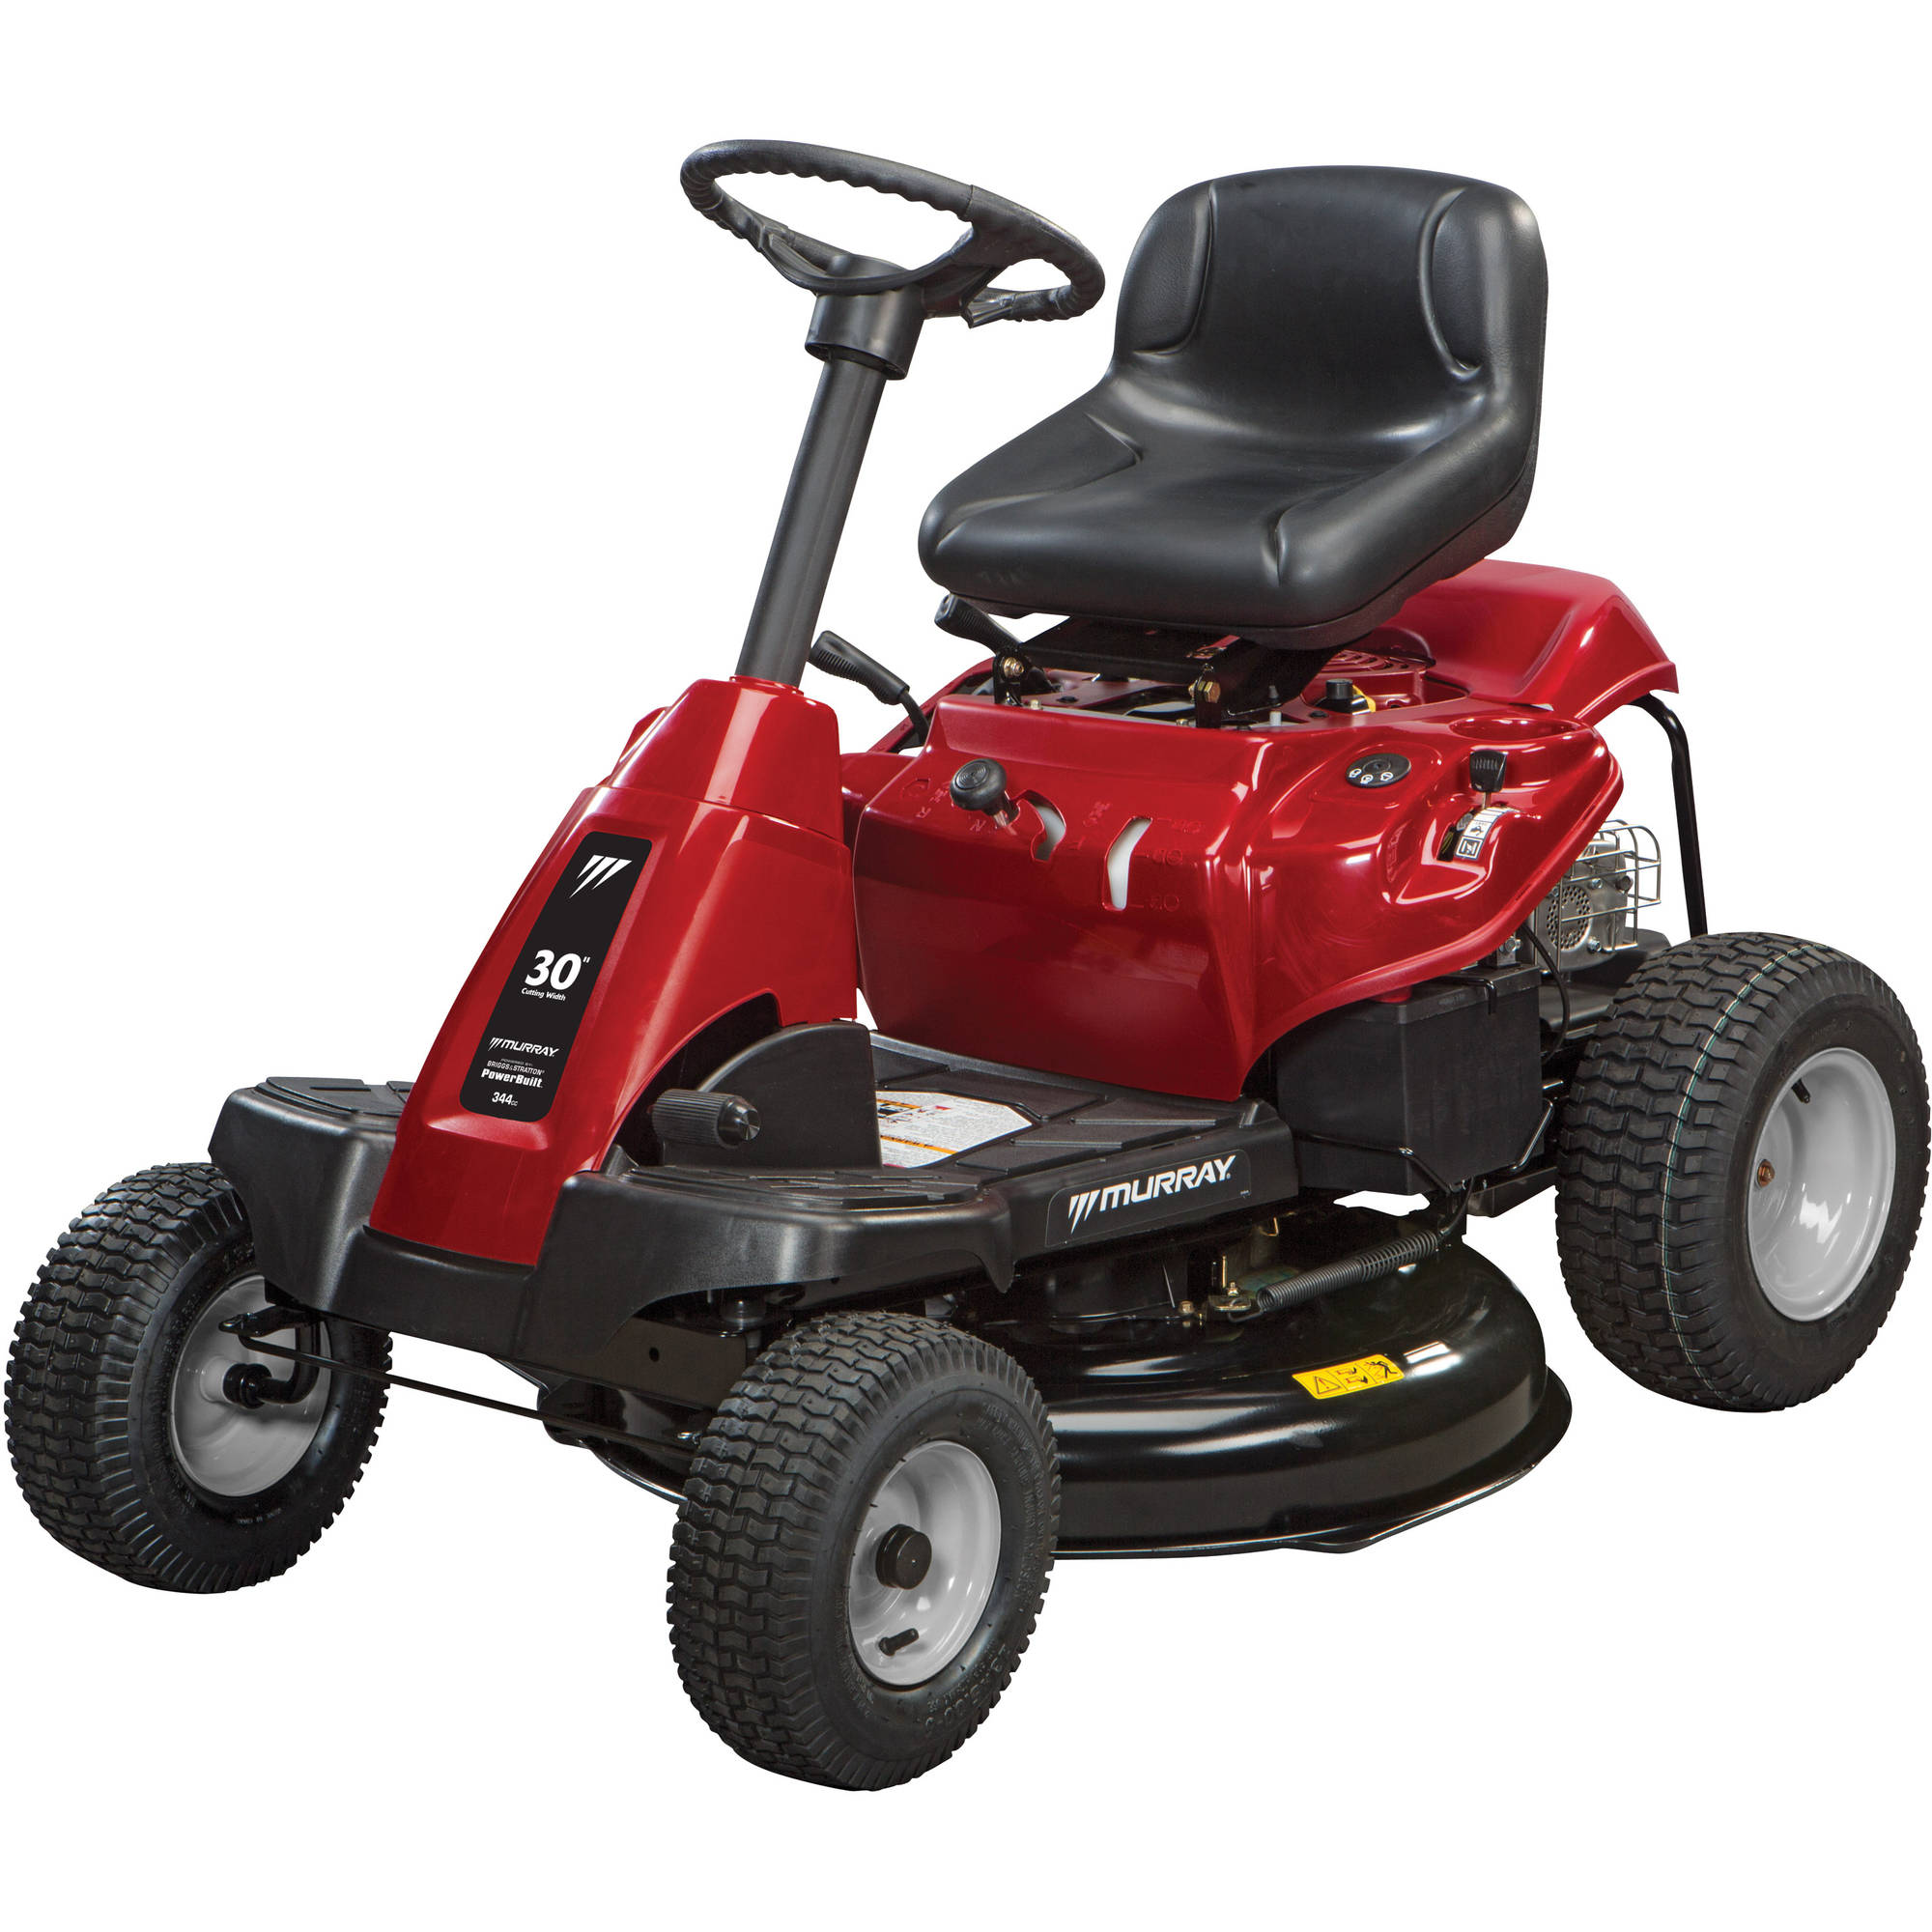 "Murray 38"" 11.5 HP Riding Mower - Walmart.com"